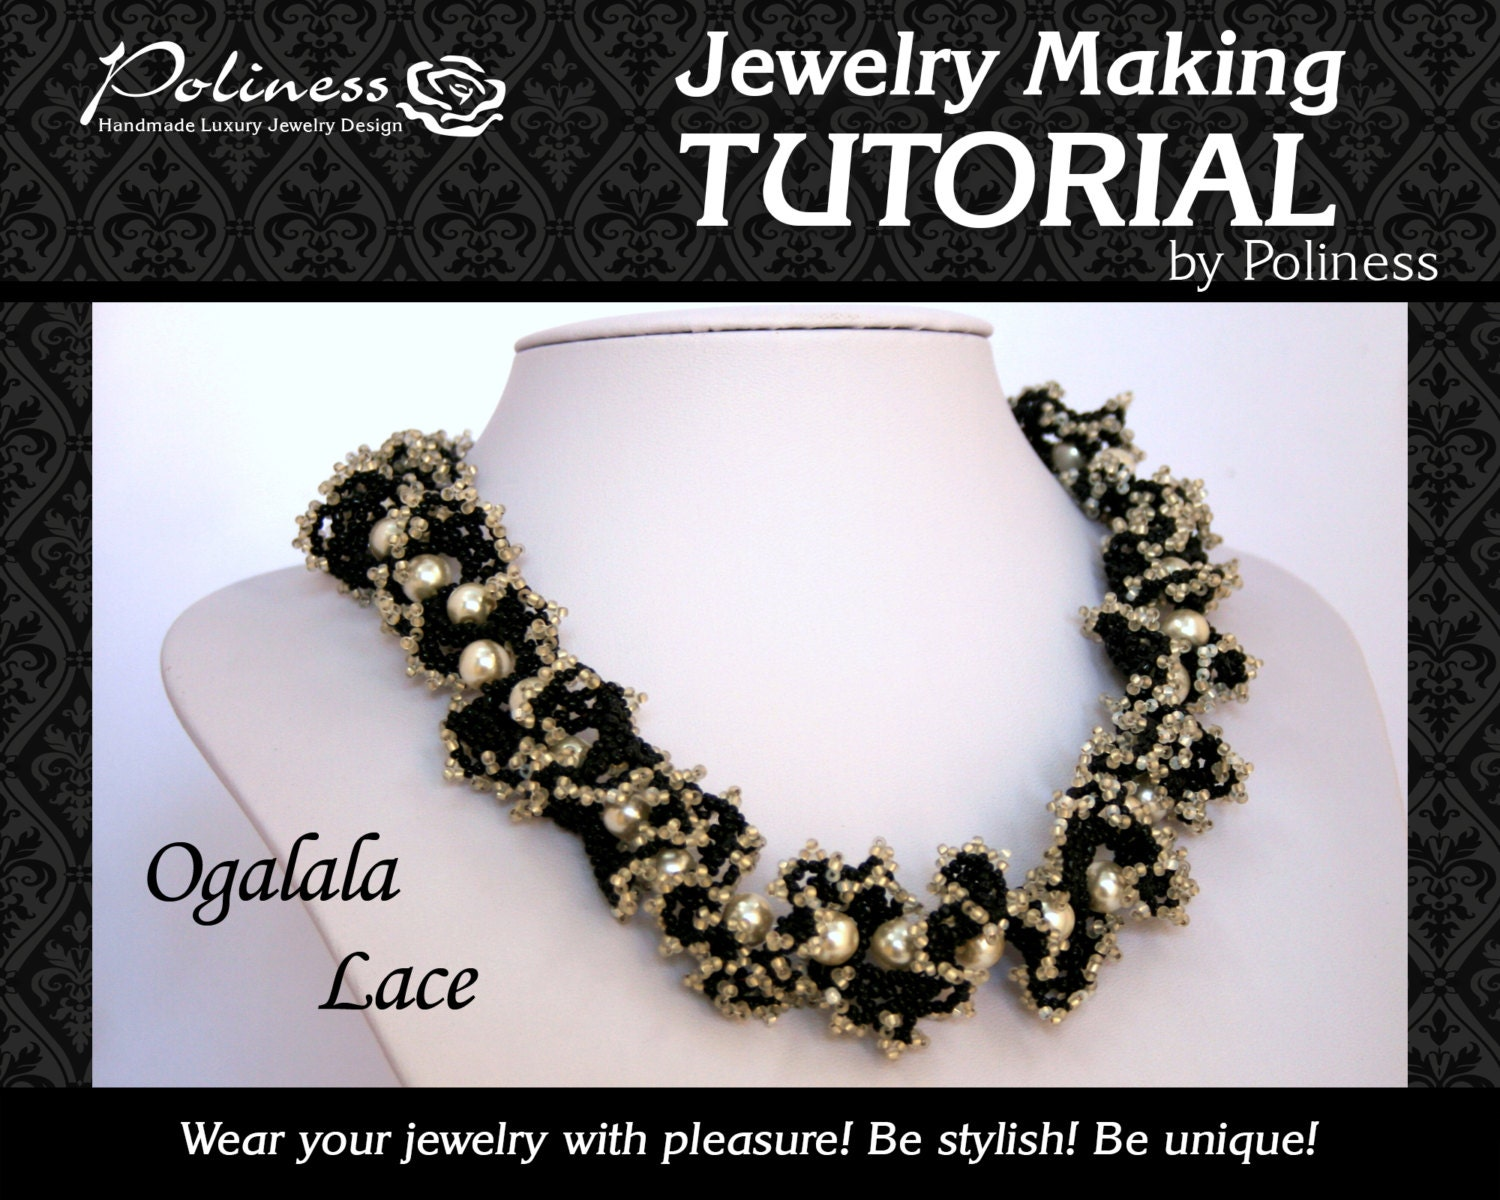 Beading - Beads making - Jewelry making - Patterns - Tutorials ...